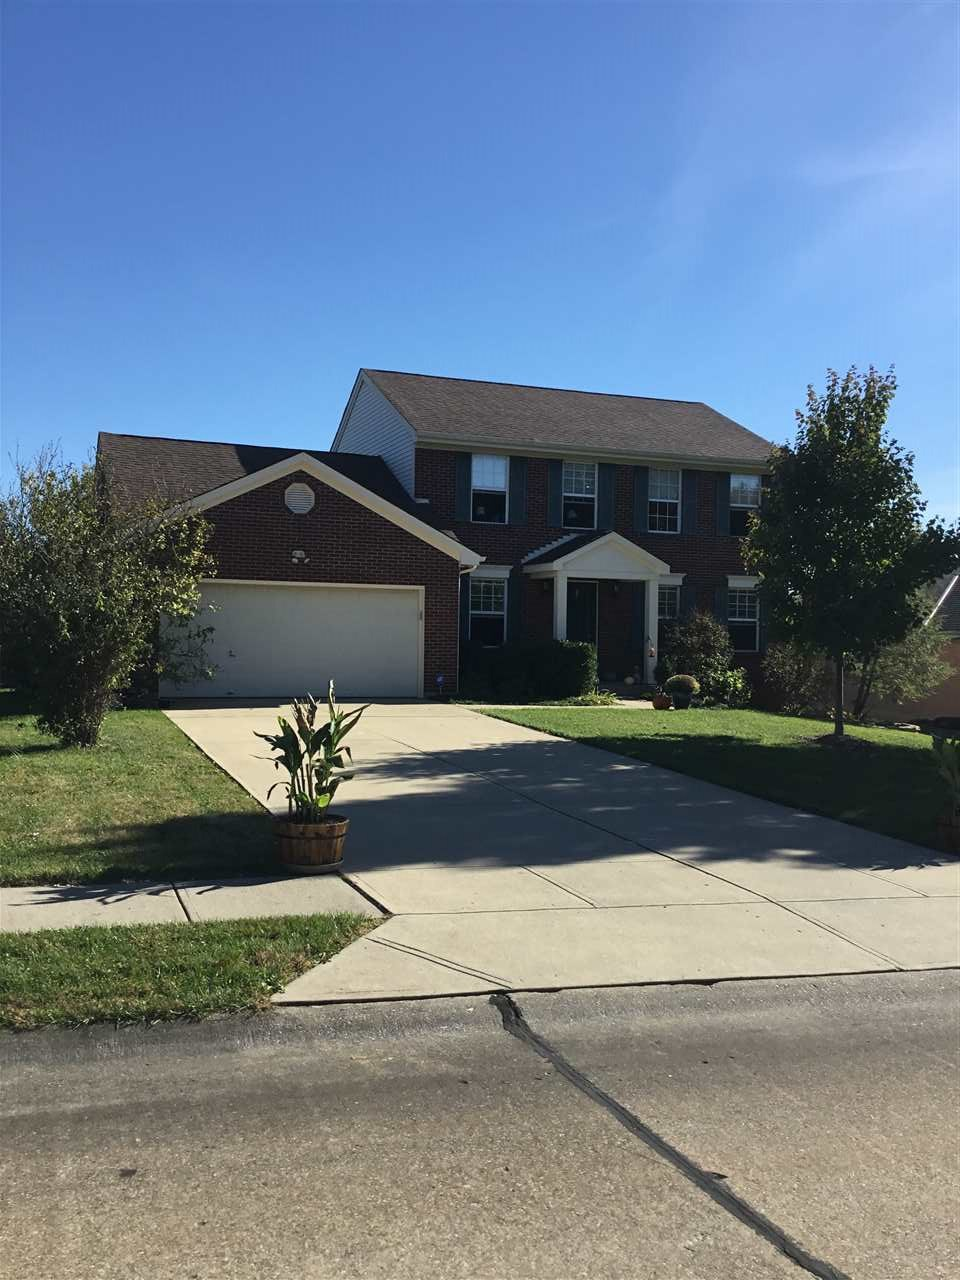 Photo 1 for 1321 Whitetail Cir Erlanger, KY 41018